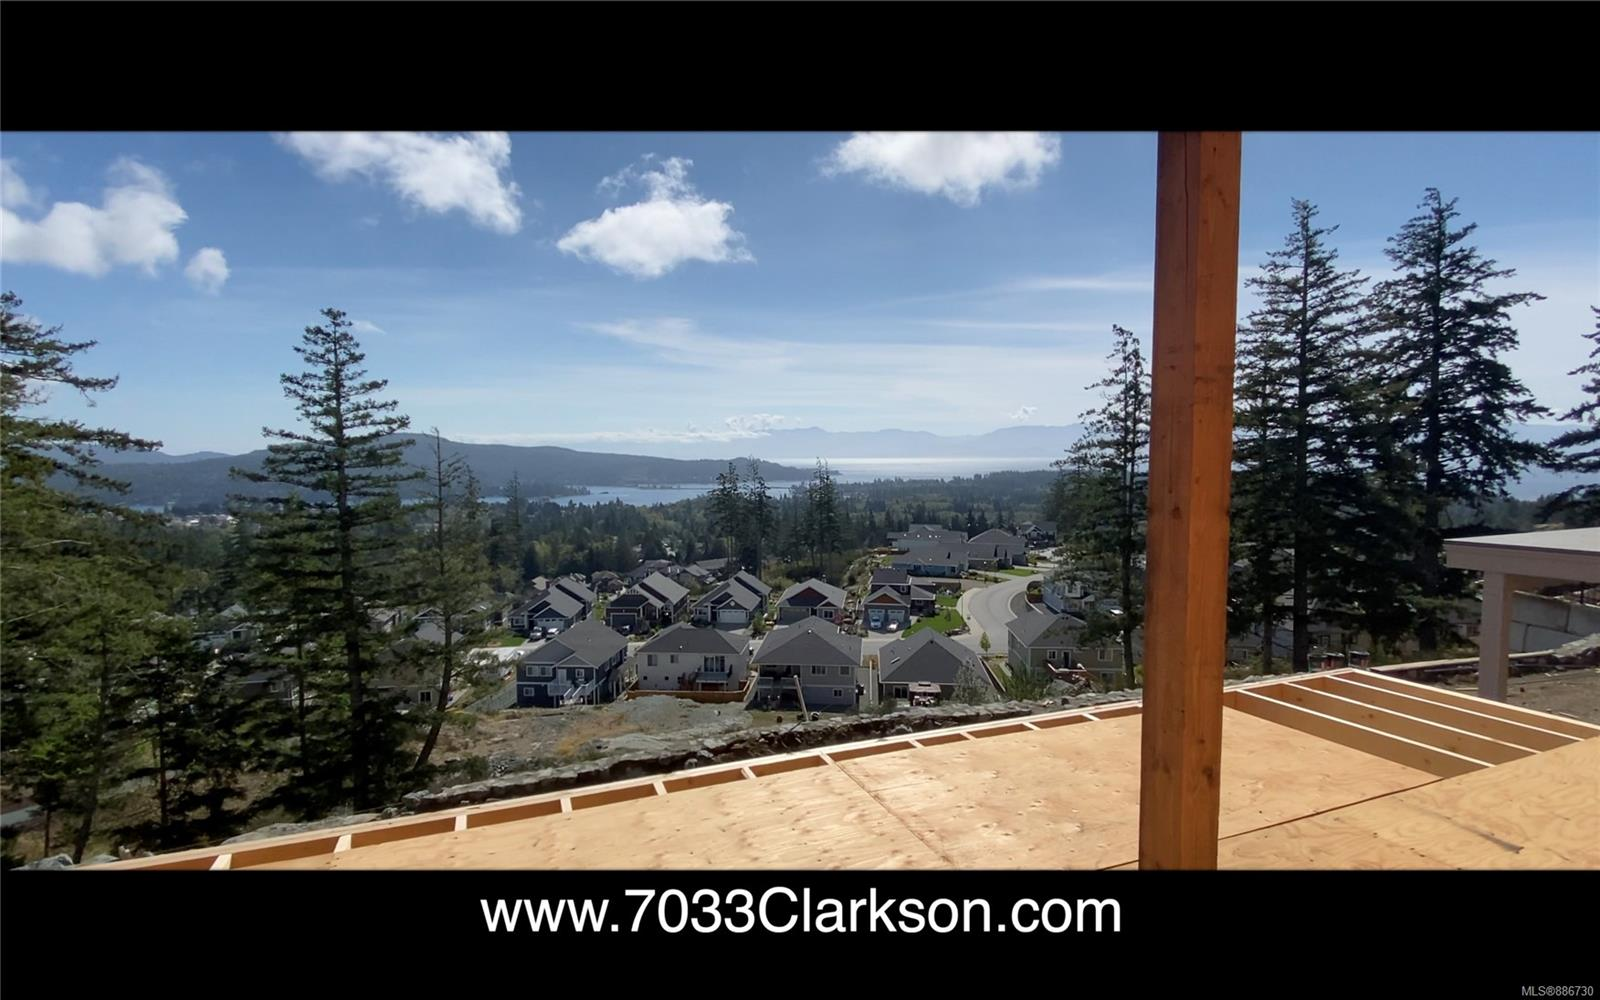 180 Degree view from the deck